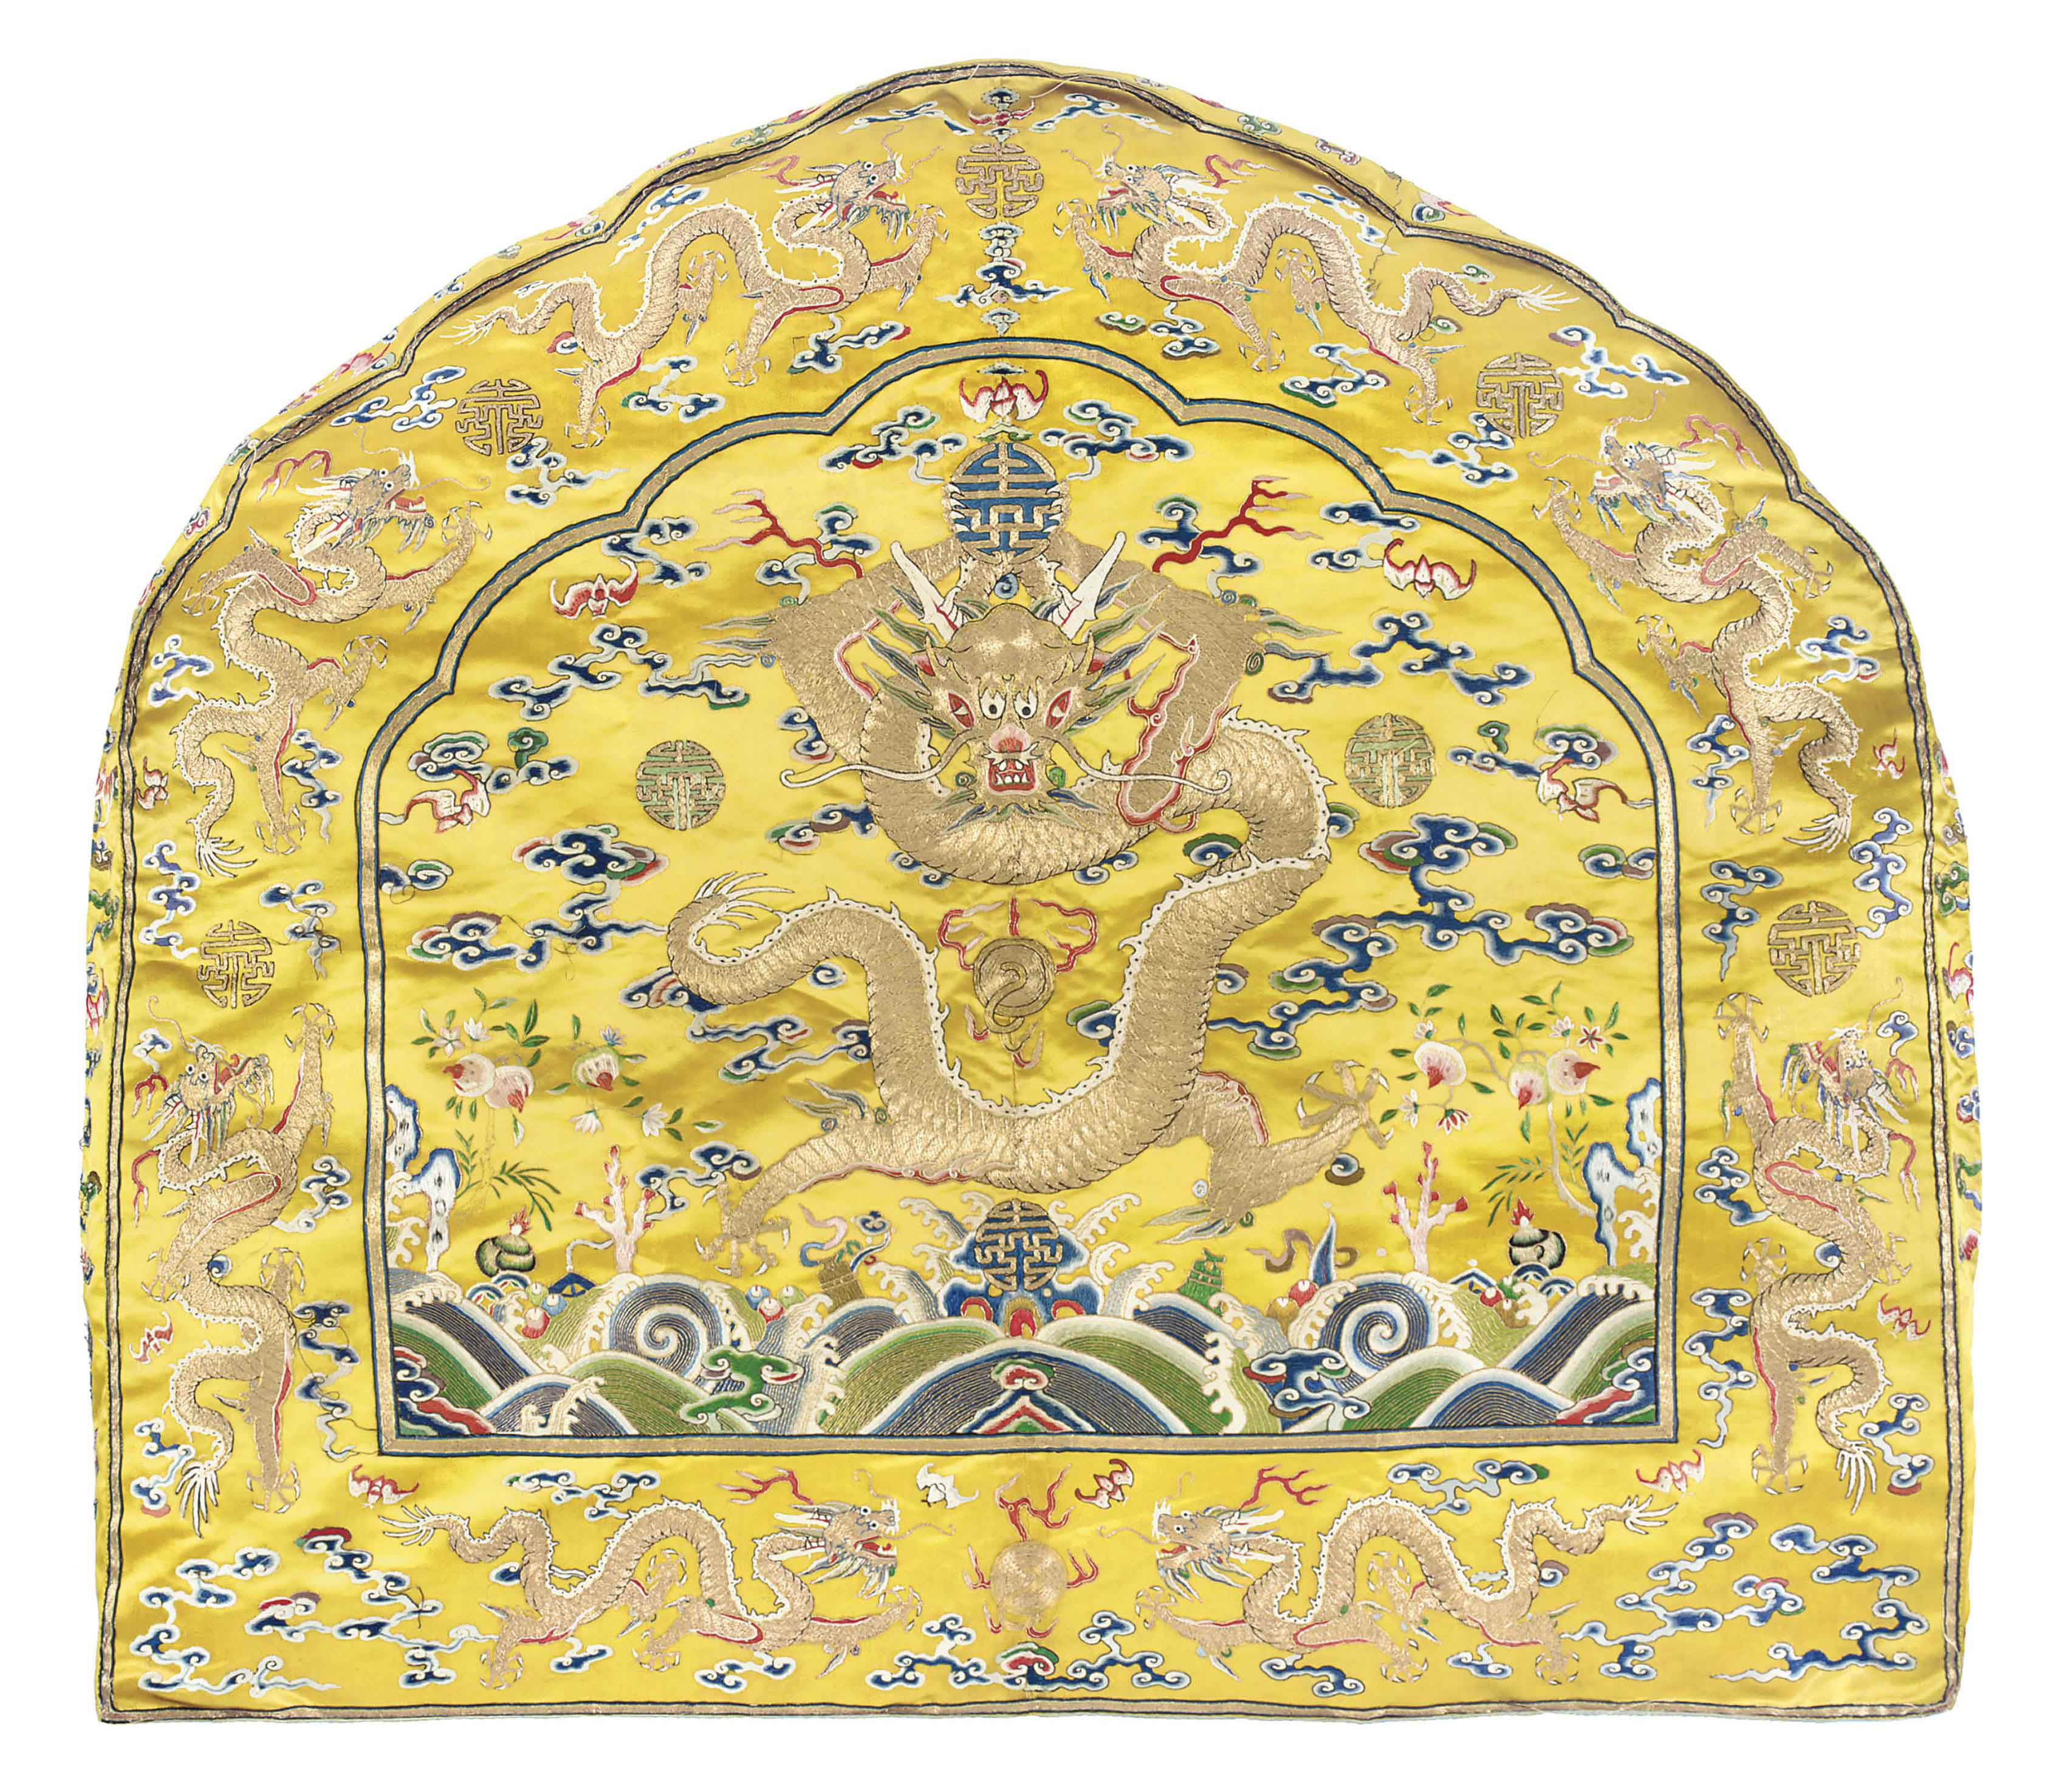 A Fine Imperial Yellow Throne Back Cushion Cover Qing